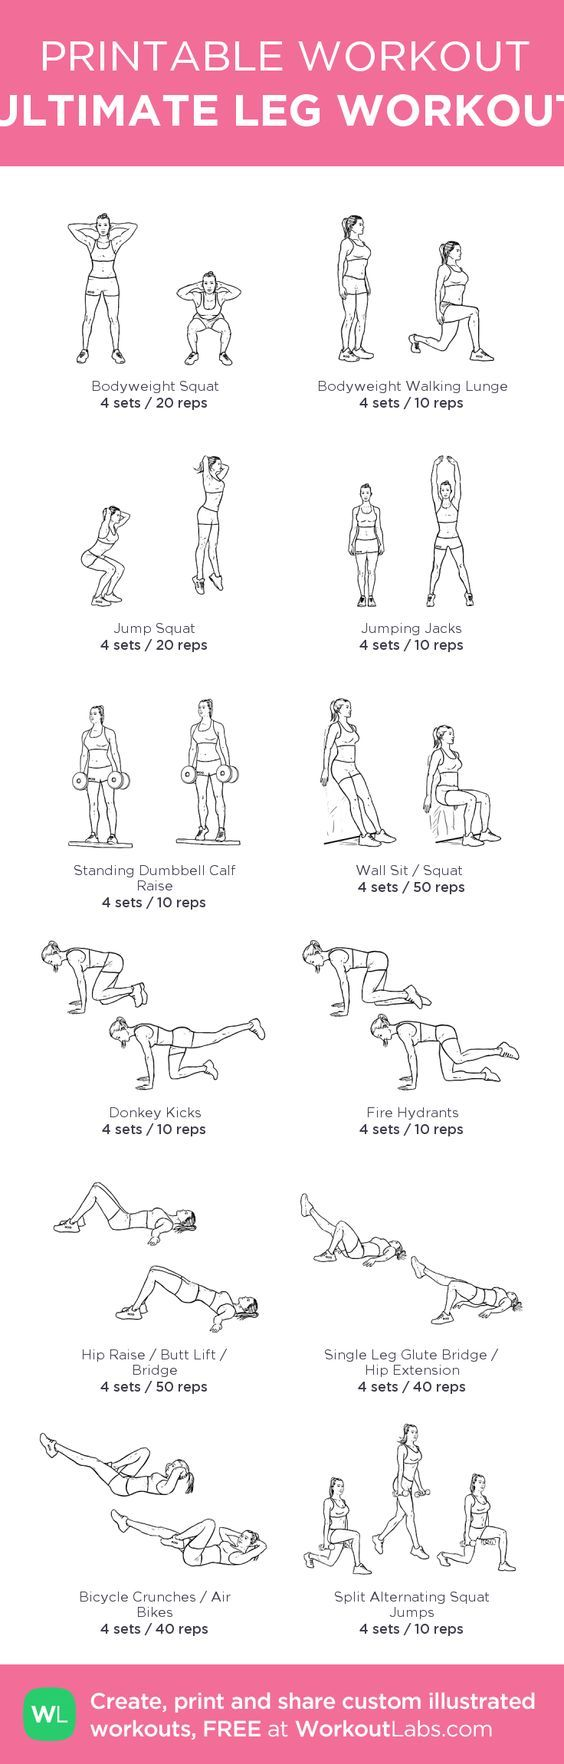 ULTIMATE LEG WORKOUT: my custom printable workout by @WorkoutLabs #workoutlabs #customworkout: